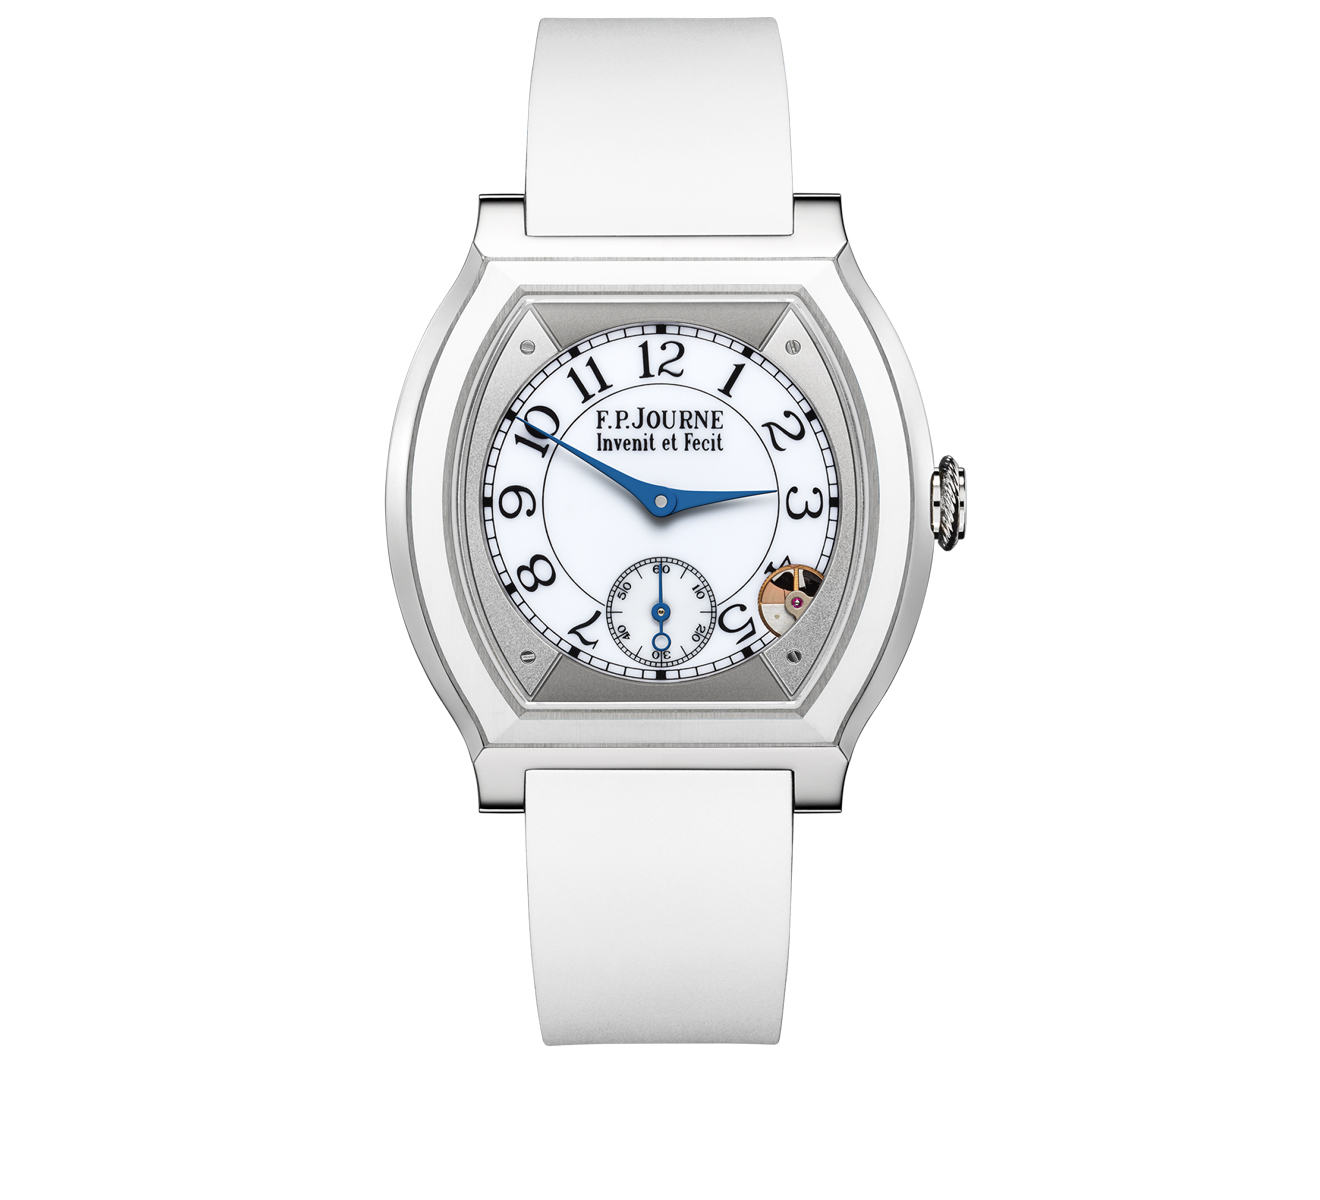 Часы 40 mm Titanium With Insert F.P.Journe Elegante ELEGANTE/40TI/WHITE CER/WHITE RUBBER - фото 1 – Mercury